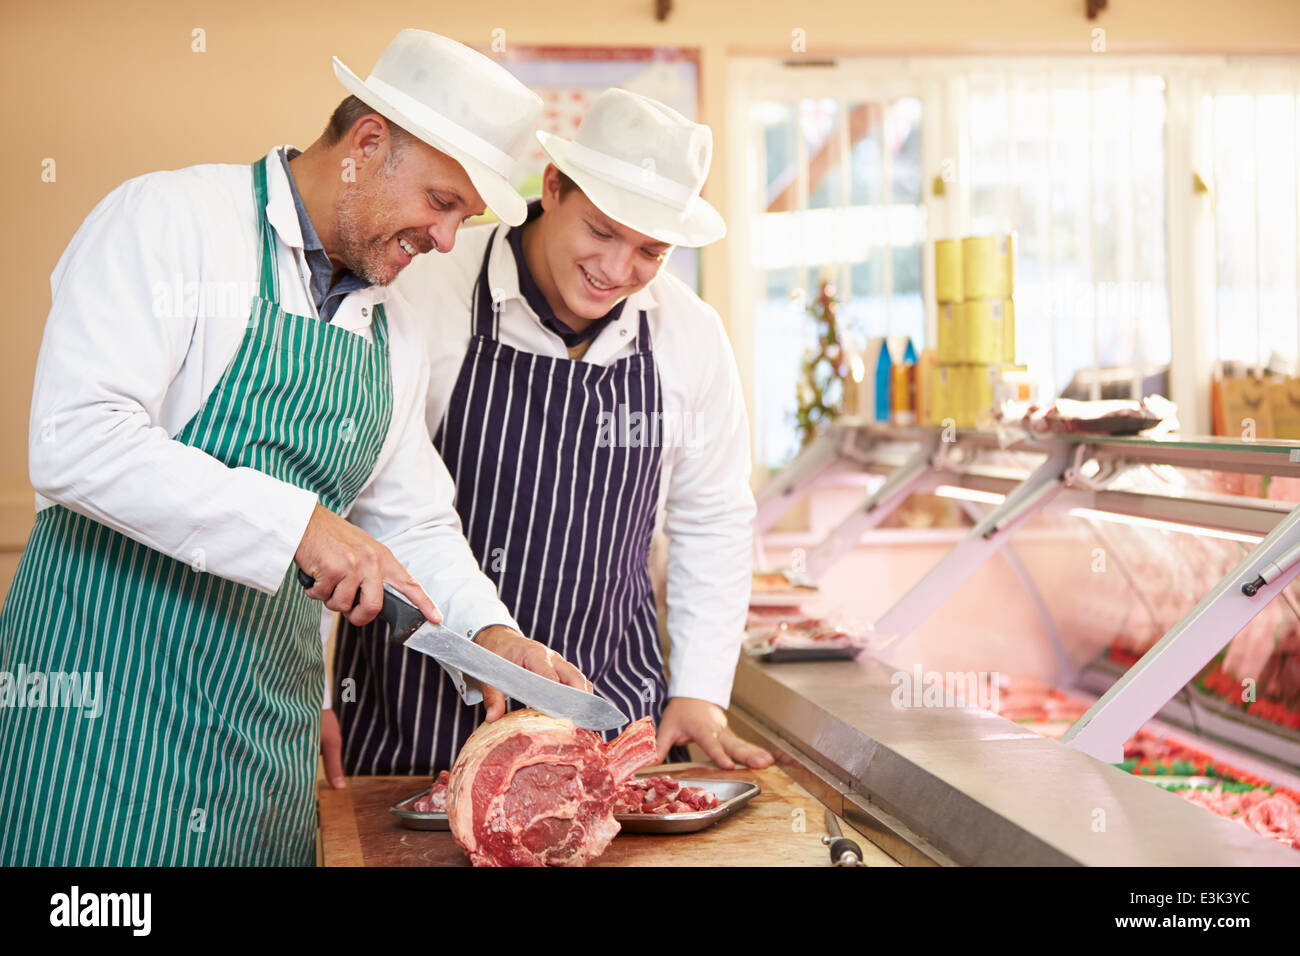 Butcher Teaching Apprentice How To Prepare Meat Stock Photo